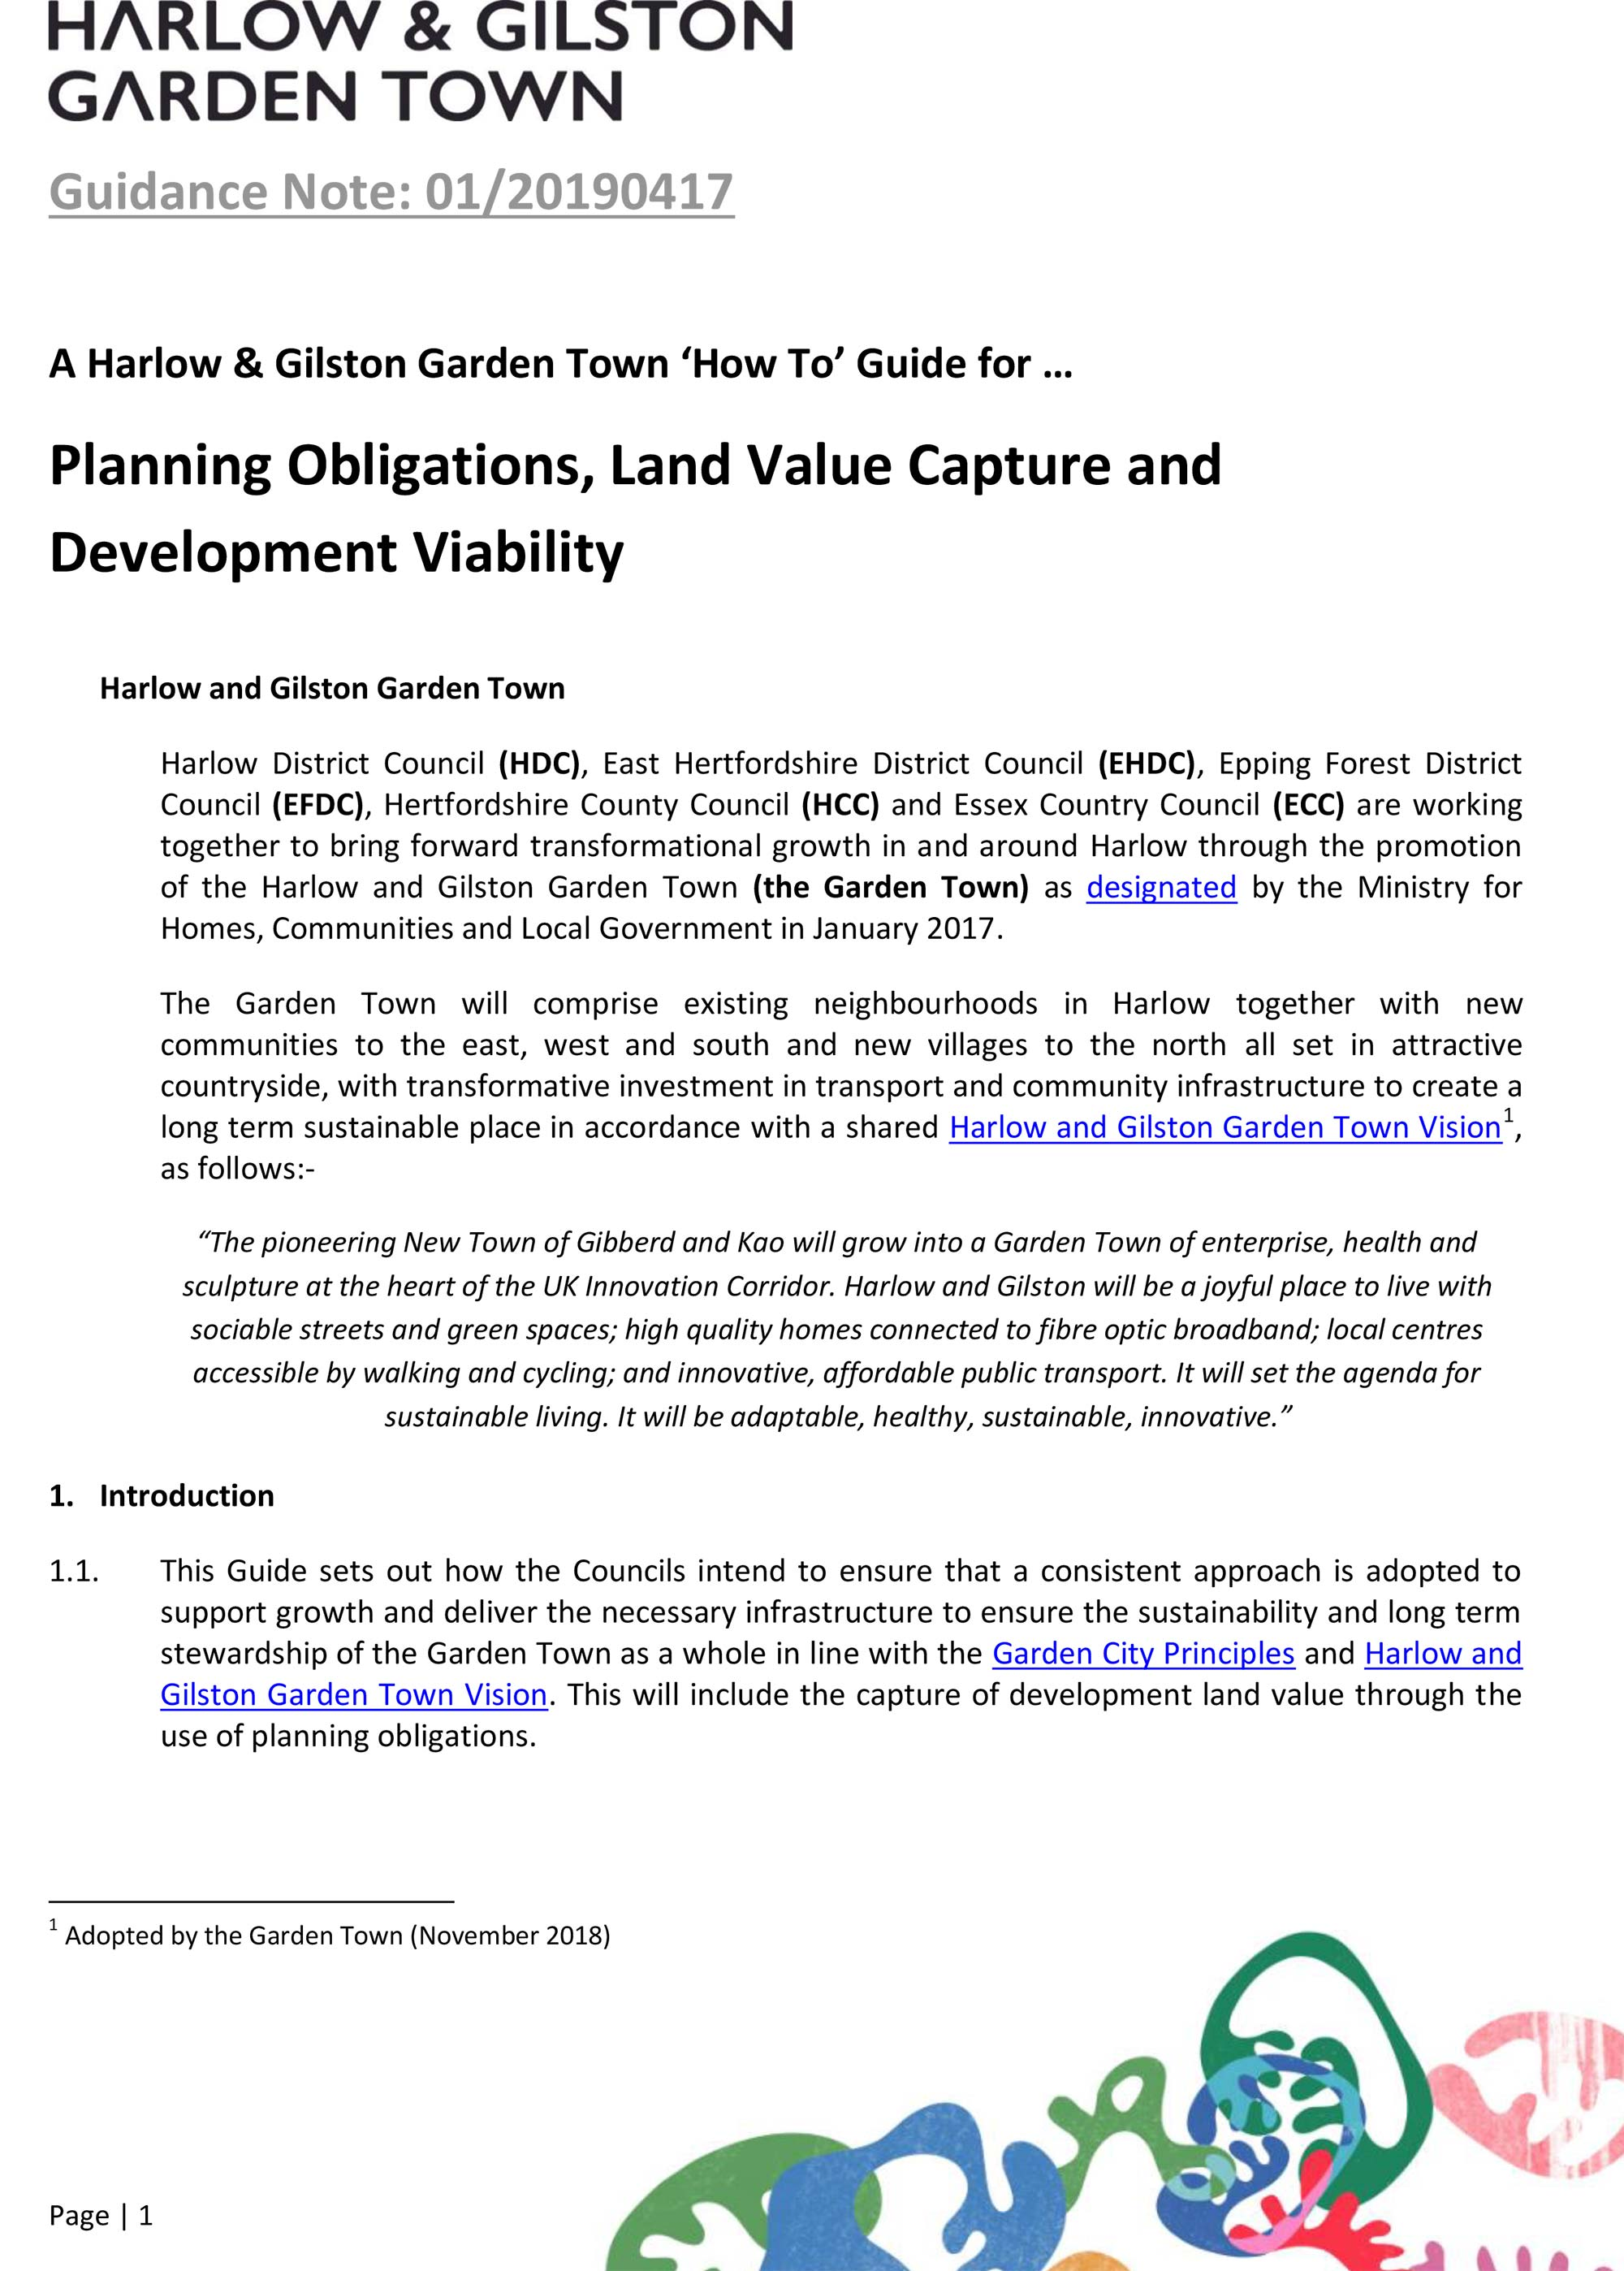 FINAL-How-To-Guide-for-Planning-Obs-Viability-01-2019.04.17-1